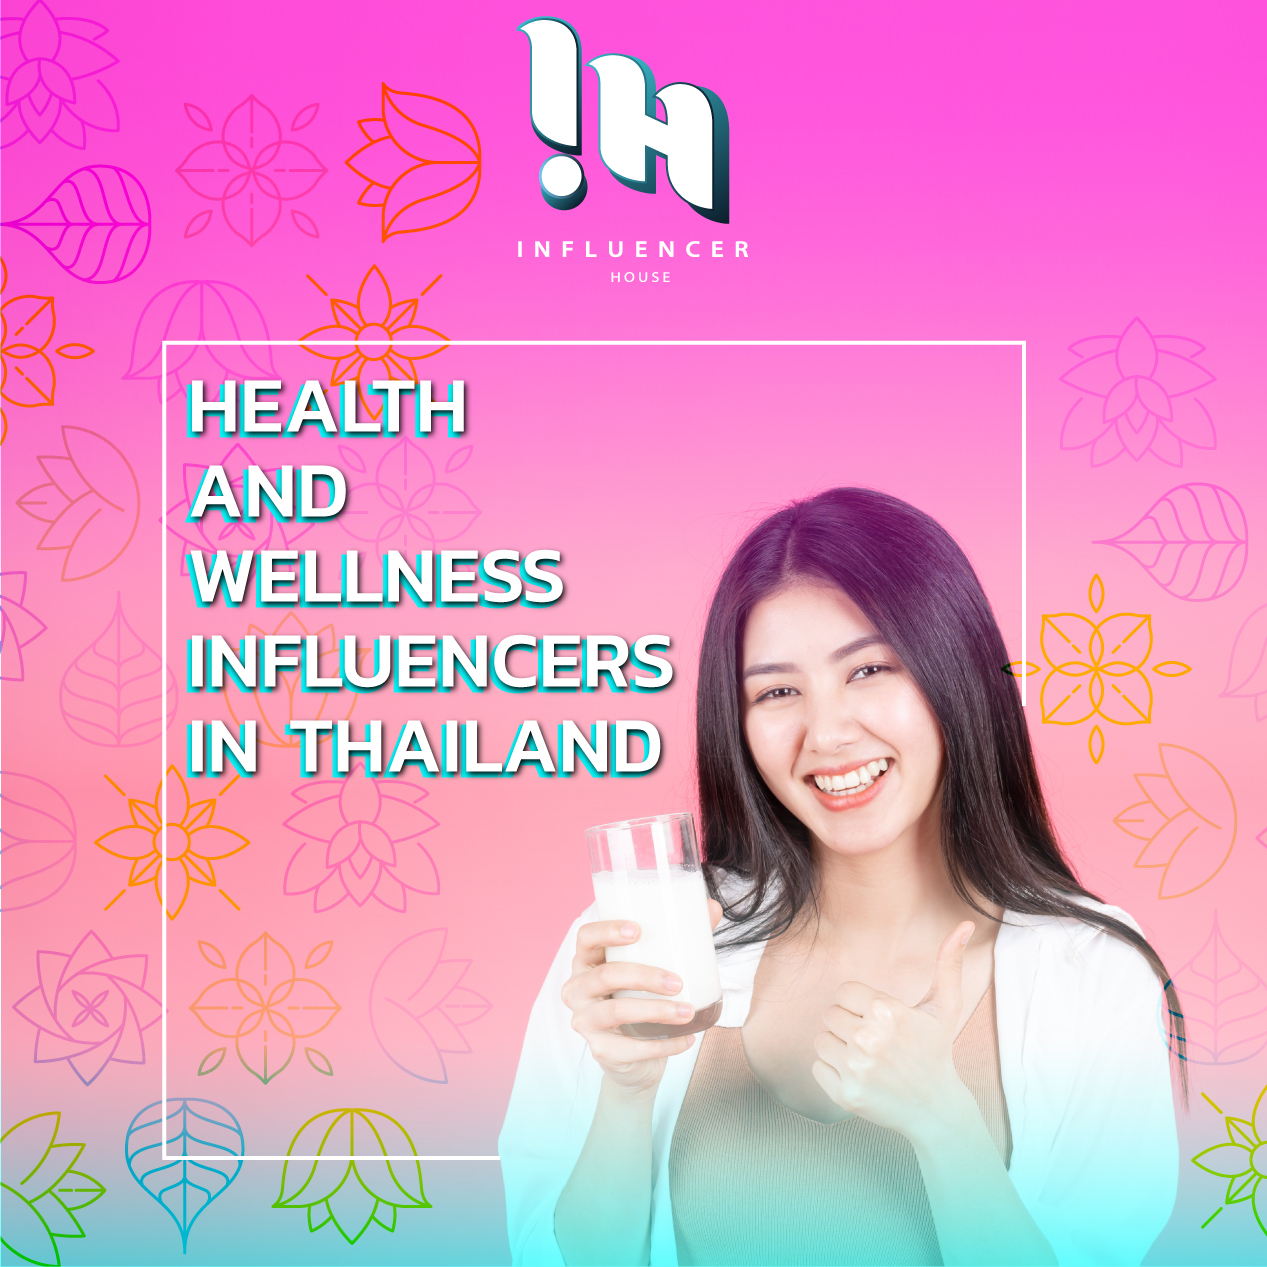 Health influencers in THAILAND